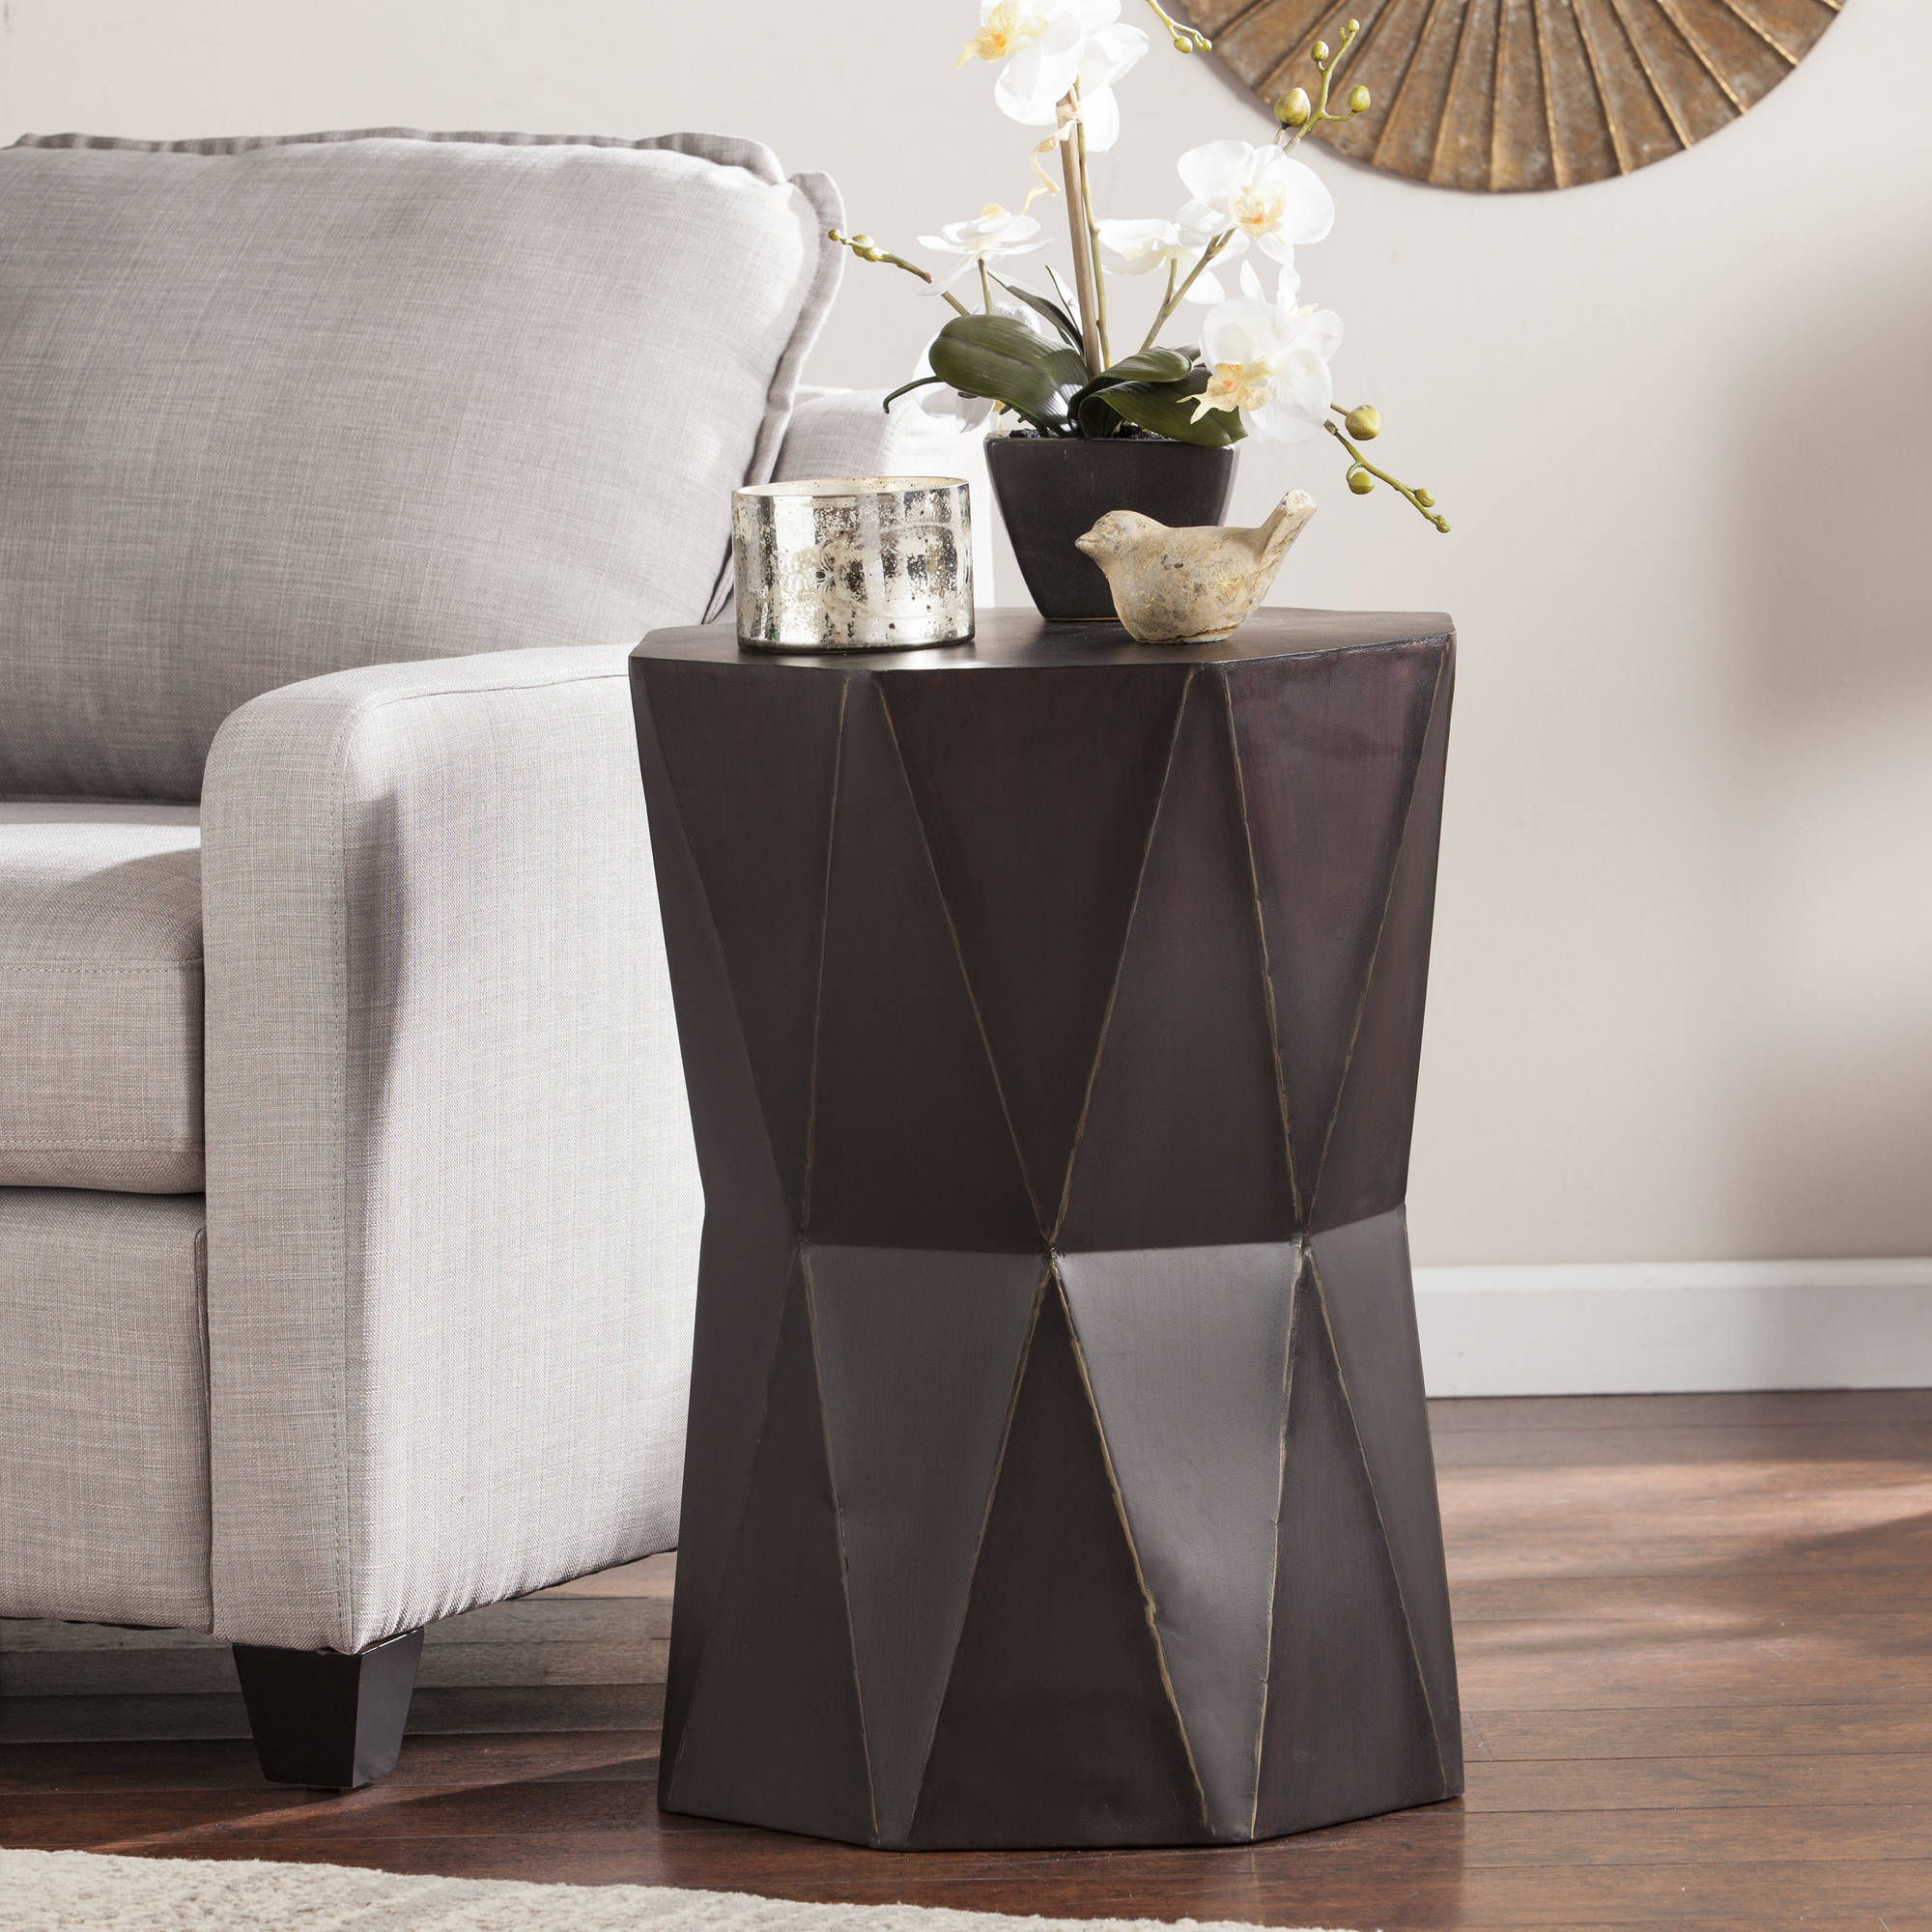 Southern Enterprises Trevale Accent Table, Antique Black